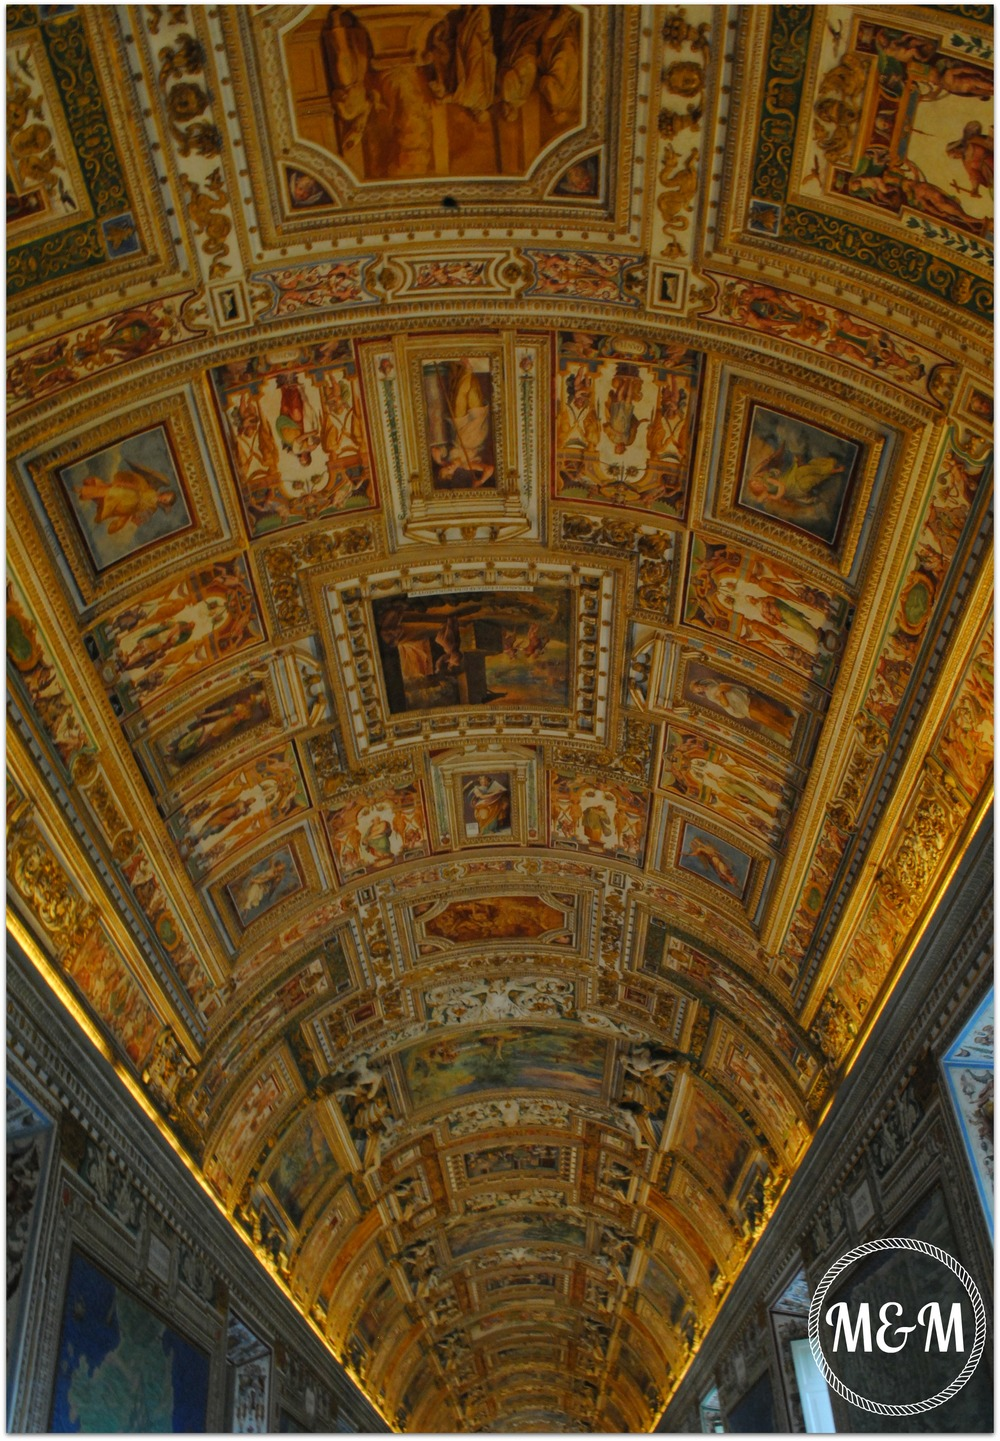 You're not allowed to take photos inside the Sistine Chapel, so here's one of the ceilings in the Vatican Museum instead!